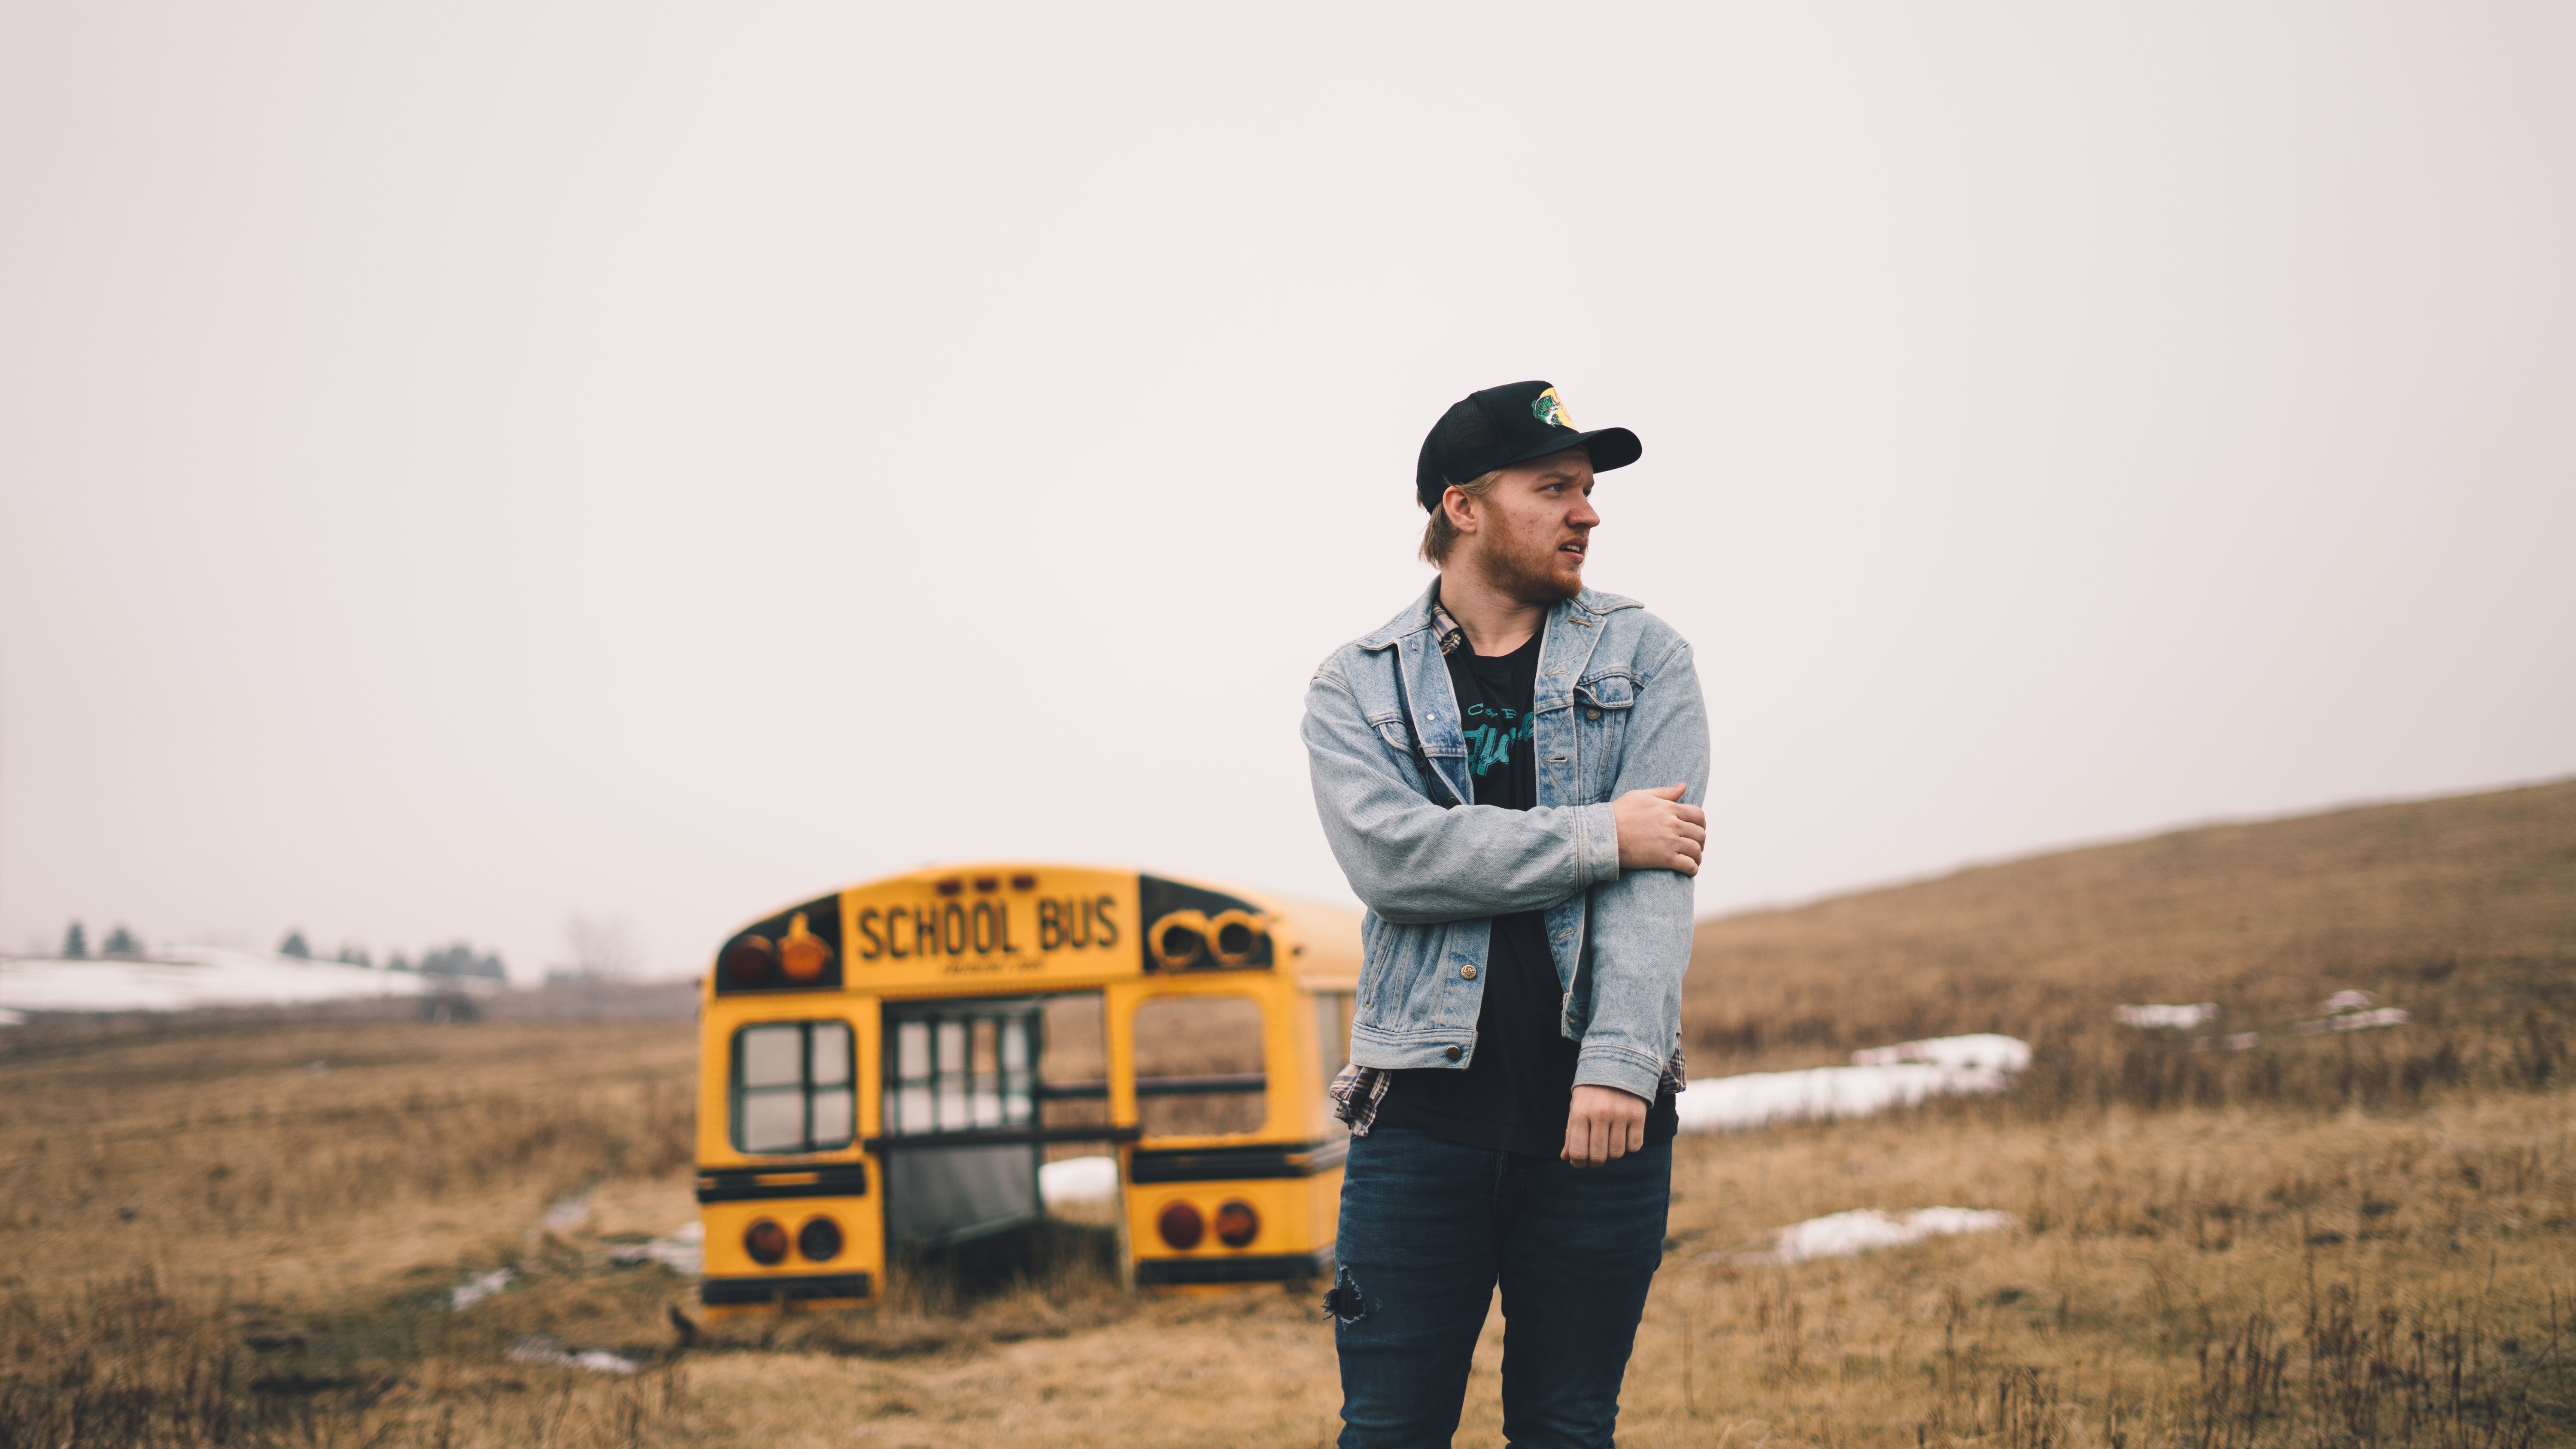 A man wearing a denim jacket holding his arm while staring down the street, standing in front of a crashed school bus in a country field